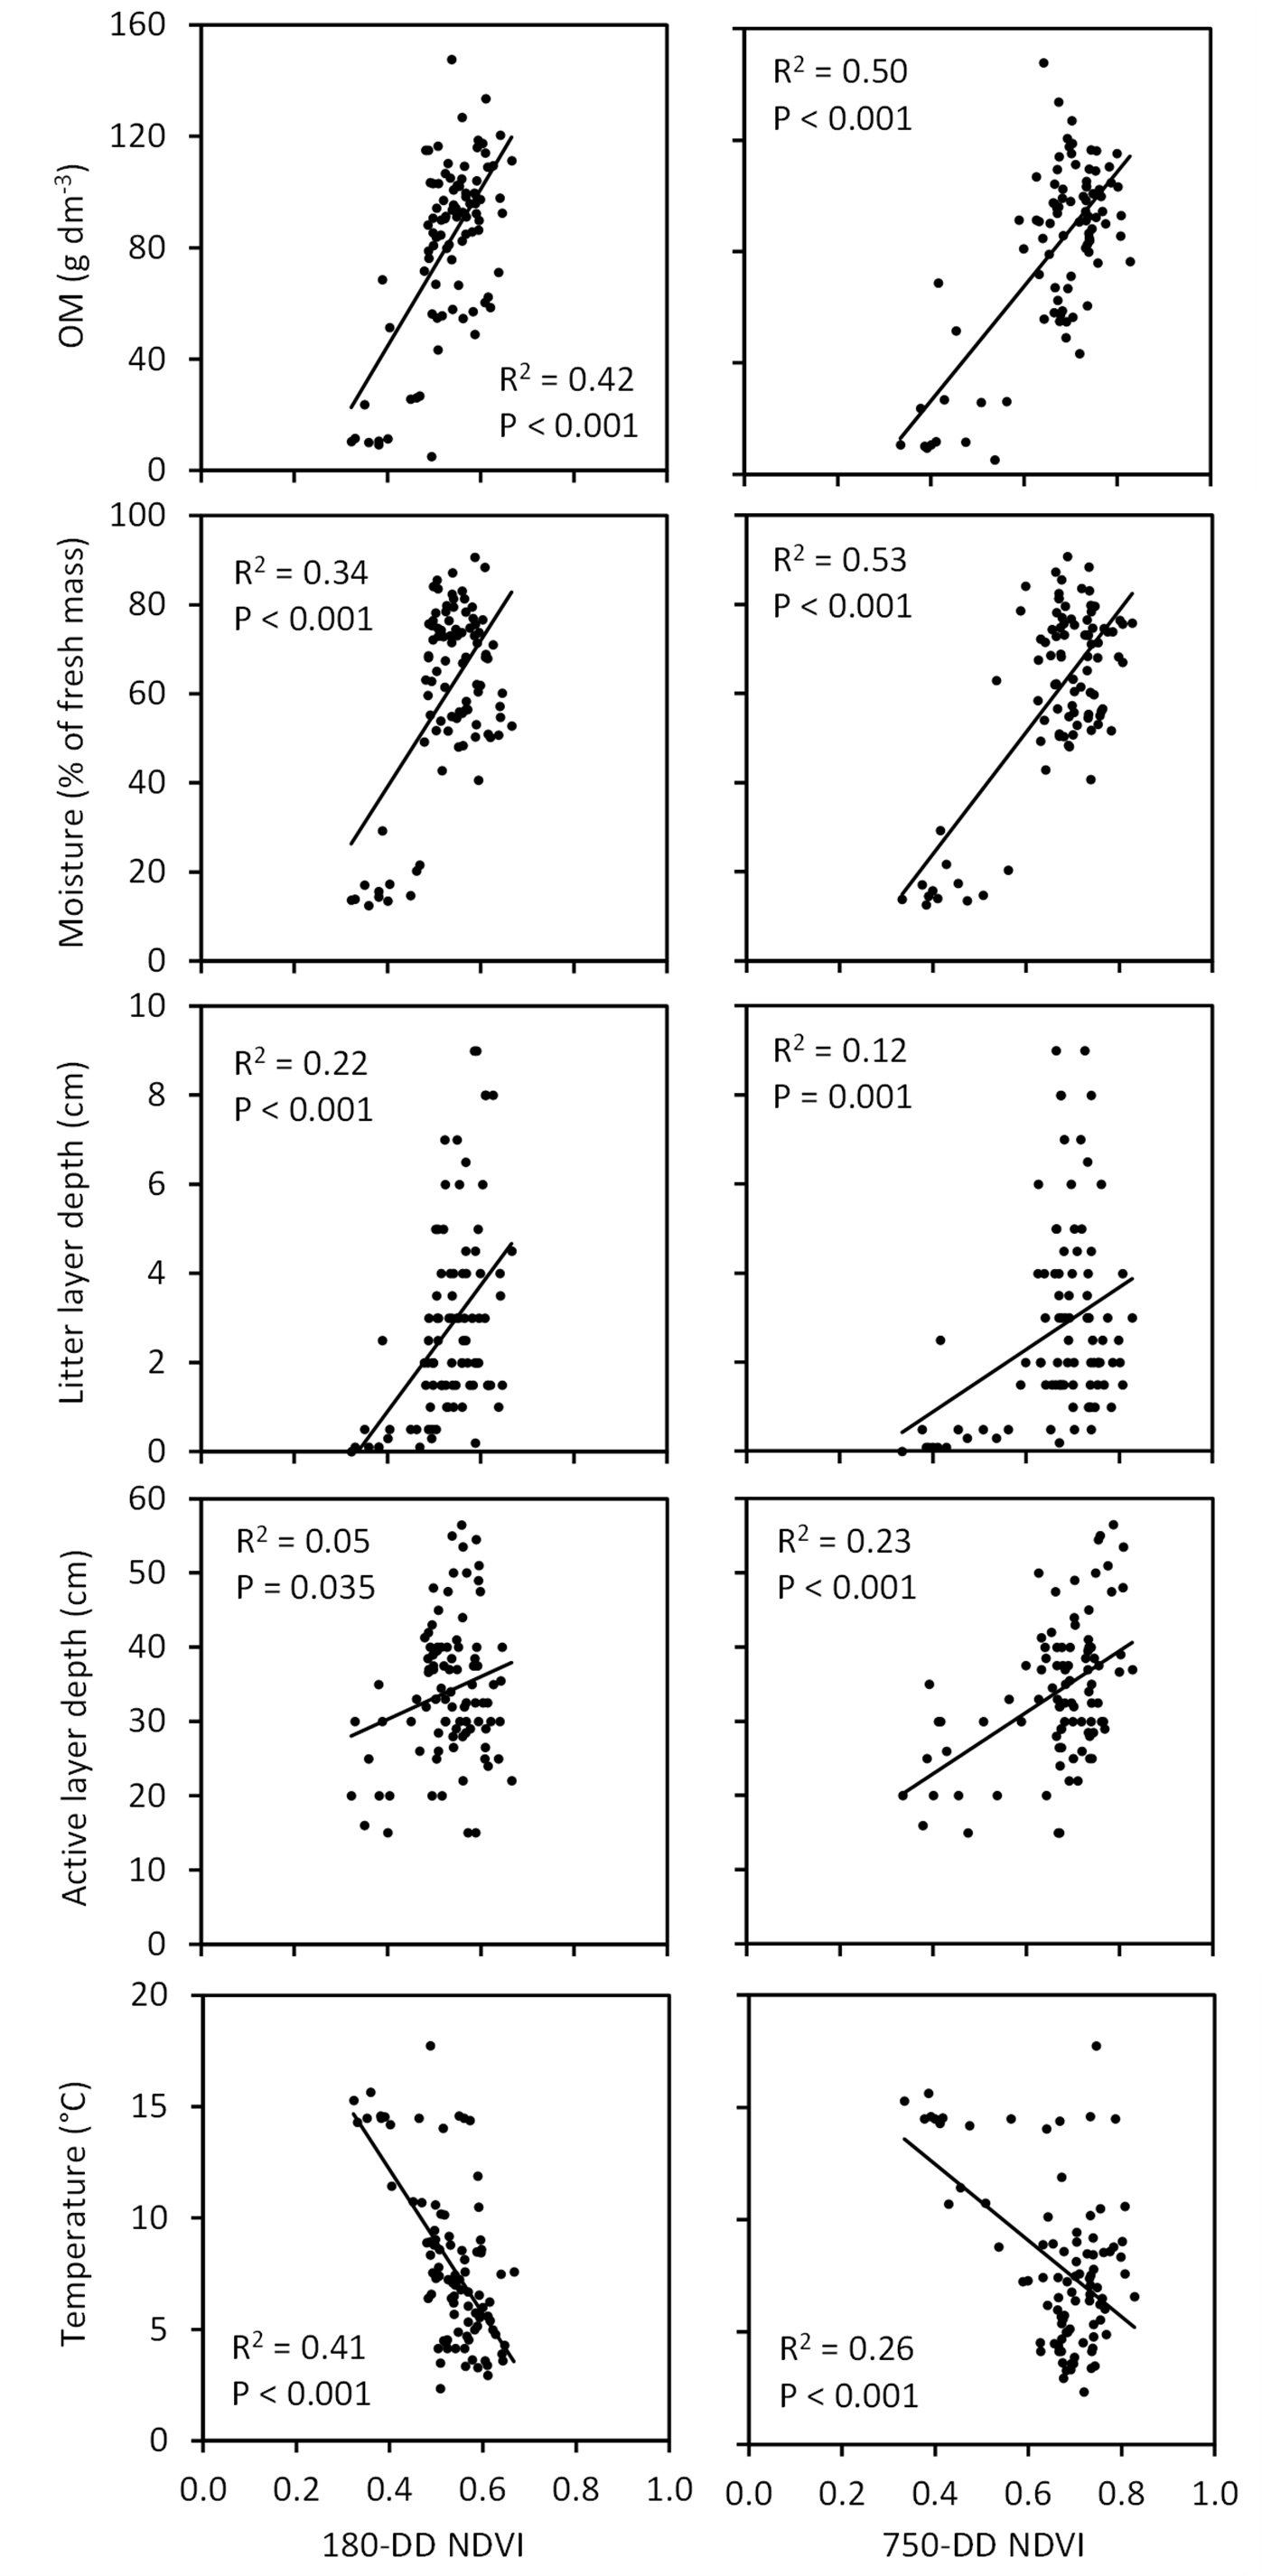 BG - Spatial variation and linkages of soil and vegetation